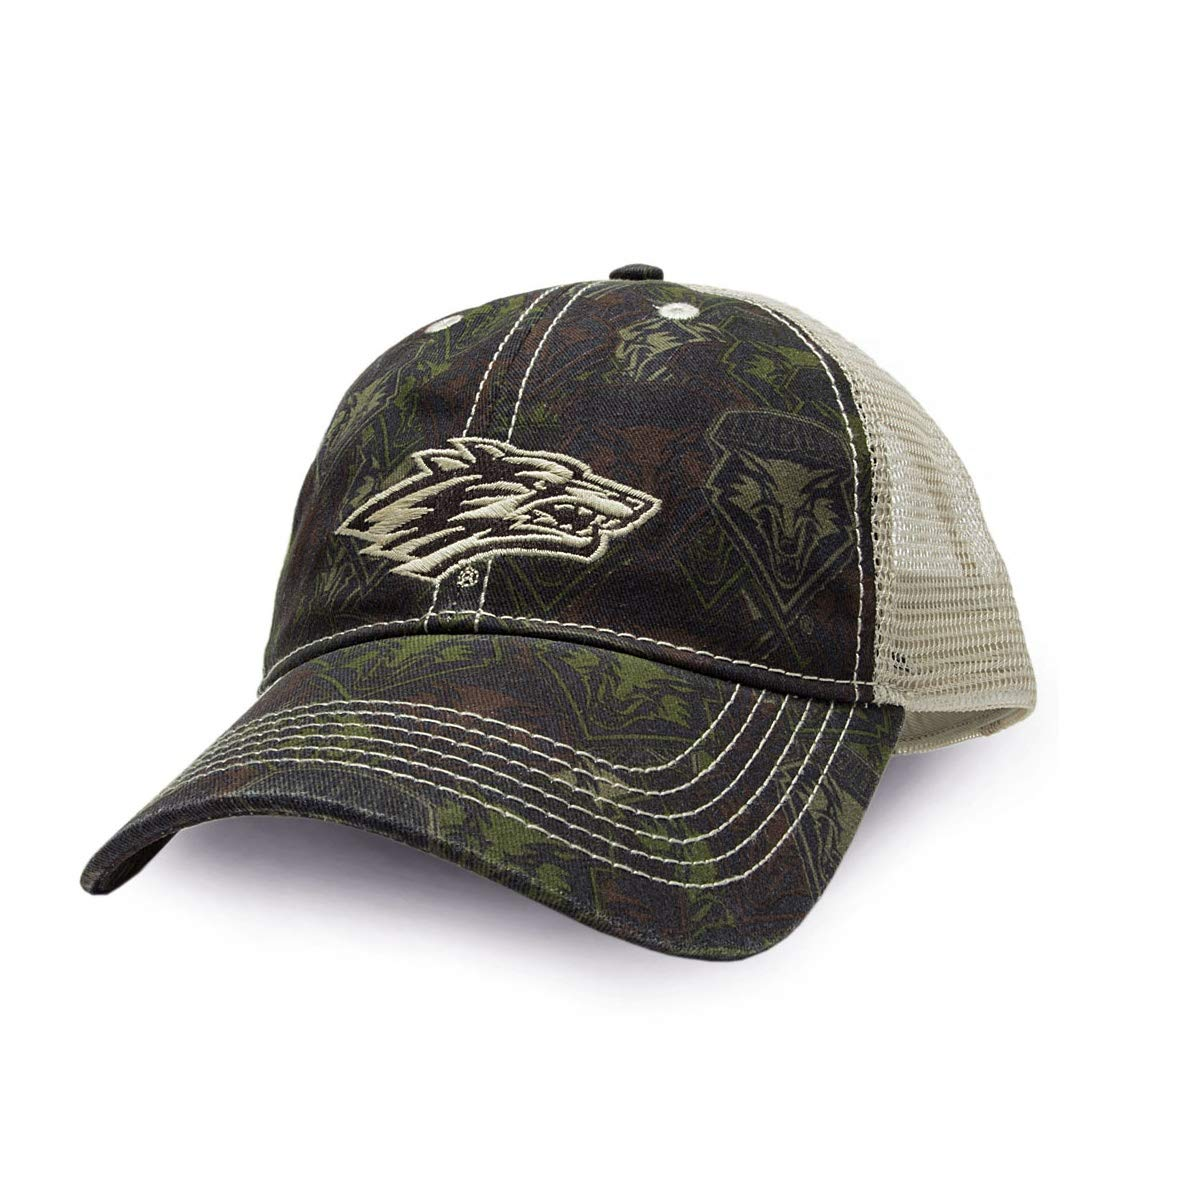 FANOUFLAGE NCAA Adjustable Trucker Hat – Camo Baseball Cap FASUH